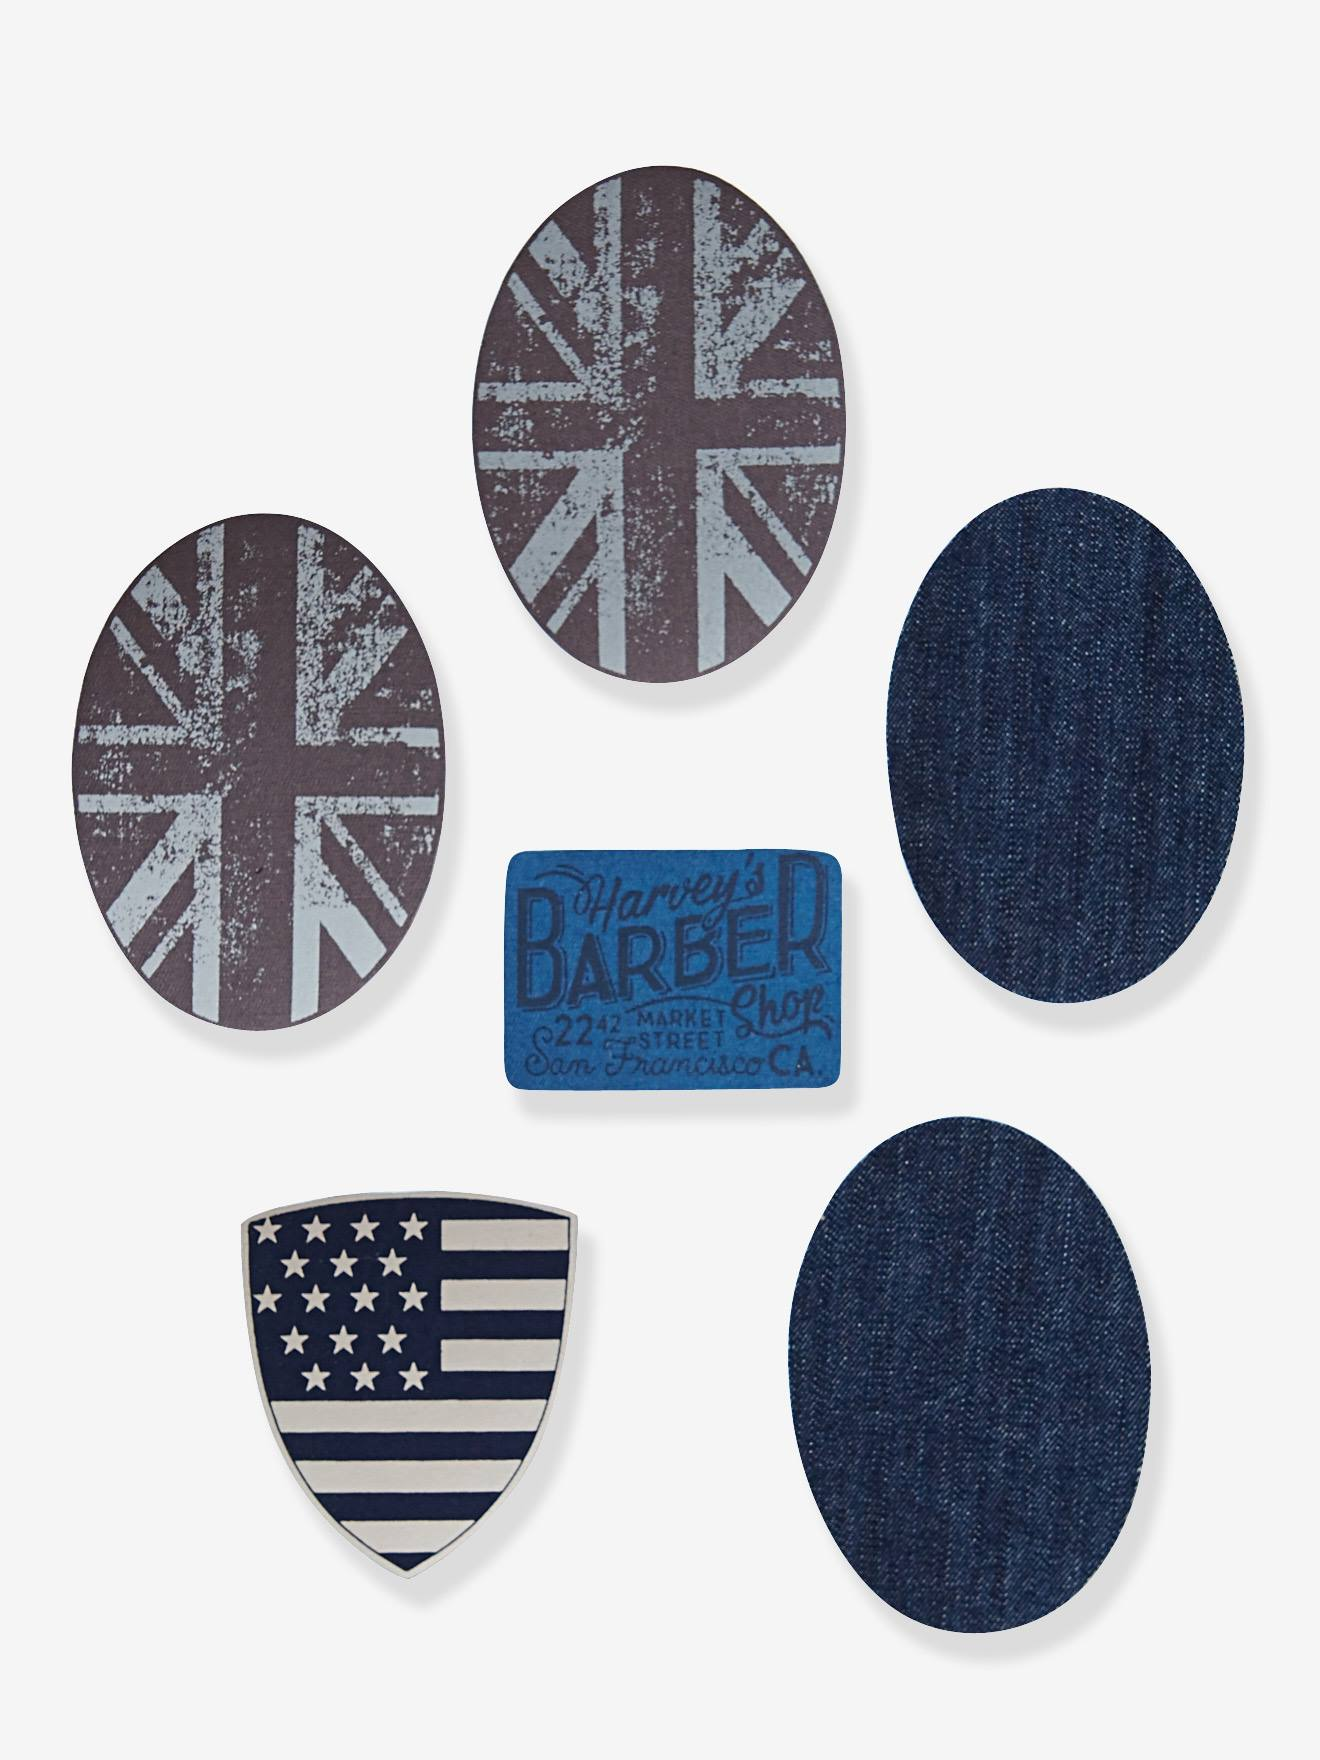 image regarding Printable Iron on Patches named Pack of 6 Boys Iron-upon Patches - blue darkish all about released, Boys